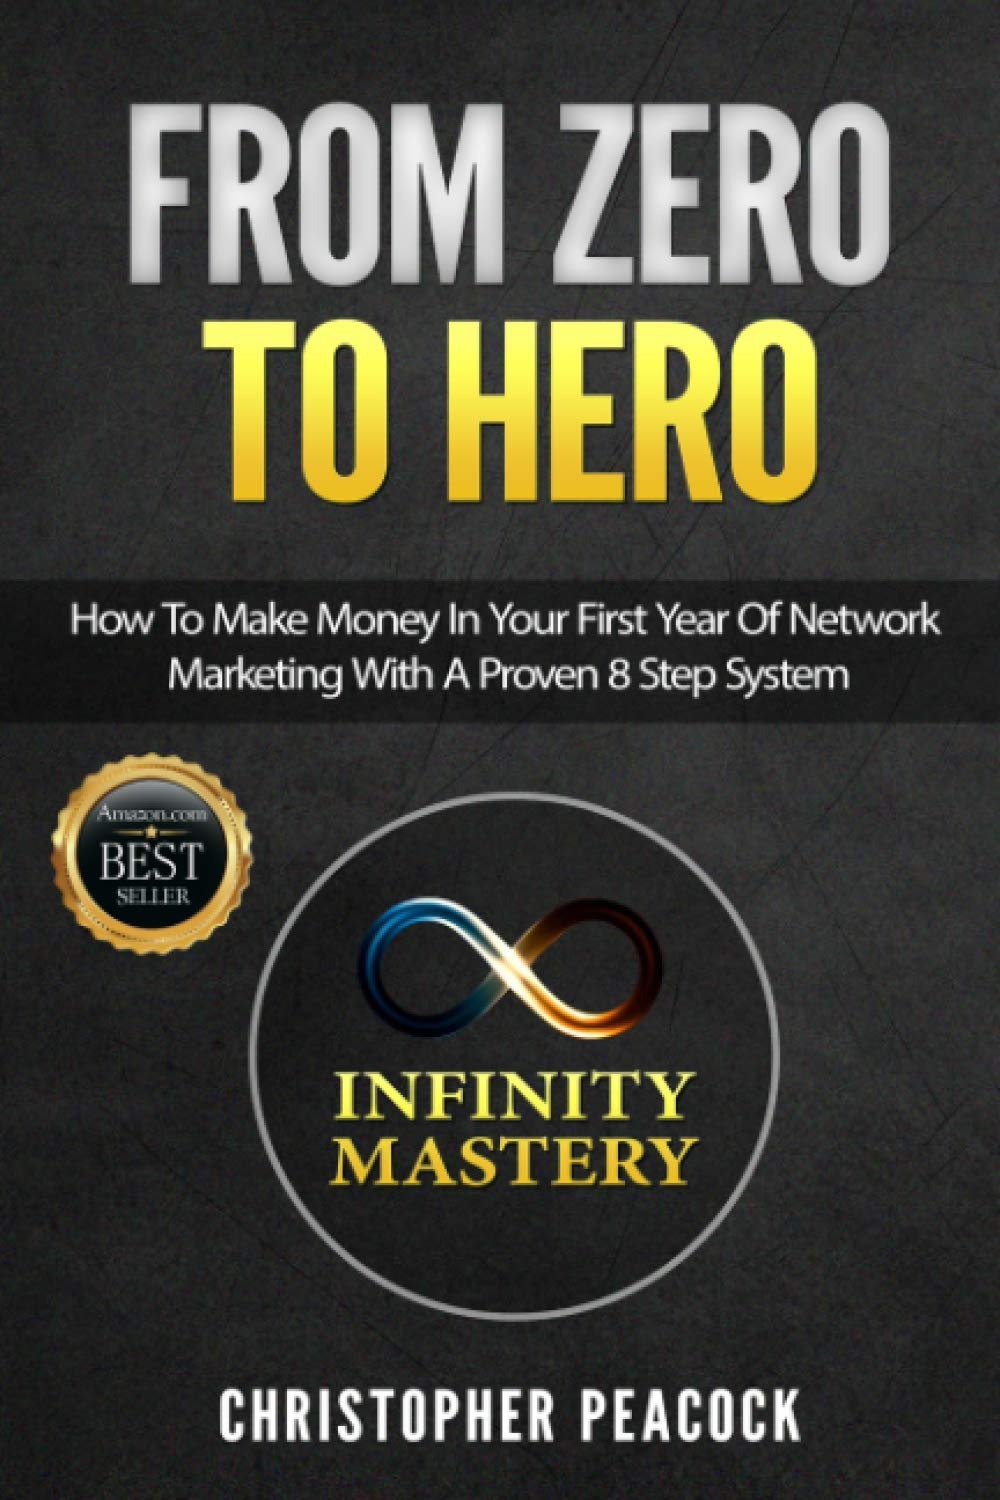 From Zero To Hero: How To Make Money In Your First Year Of Network Marketing With A Proven 8 Step System